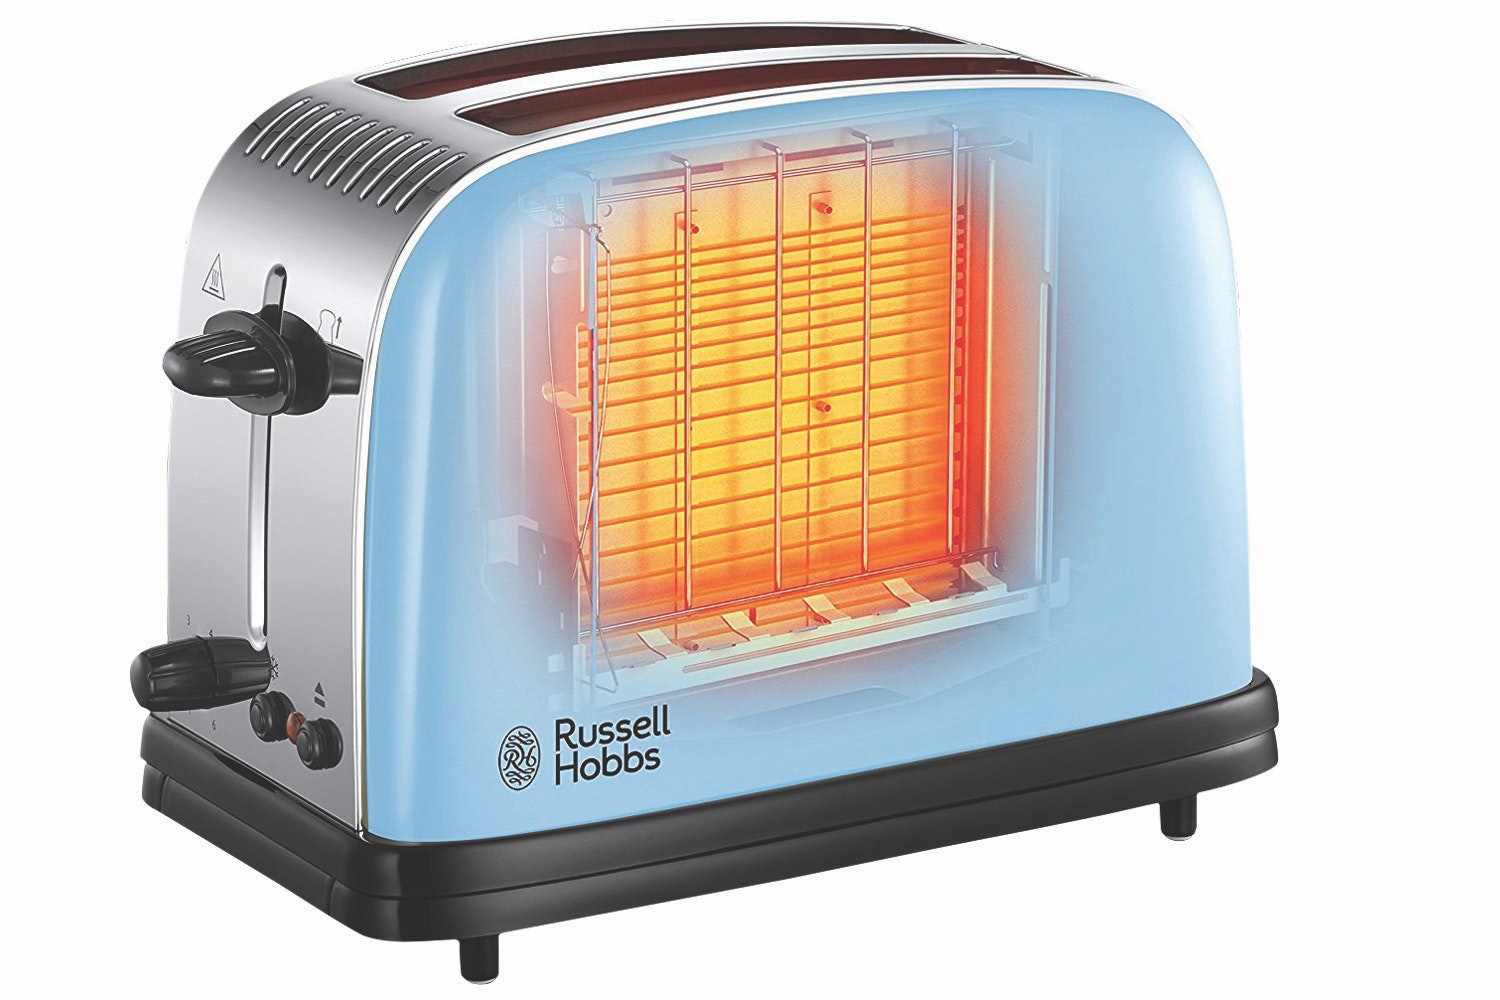 Russell Hobbs Colours Plus 2 Slice Toaster | 23335 |  Blue